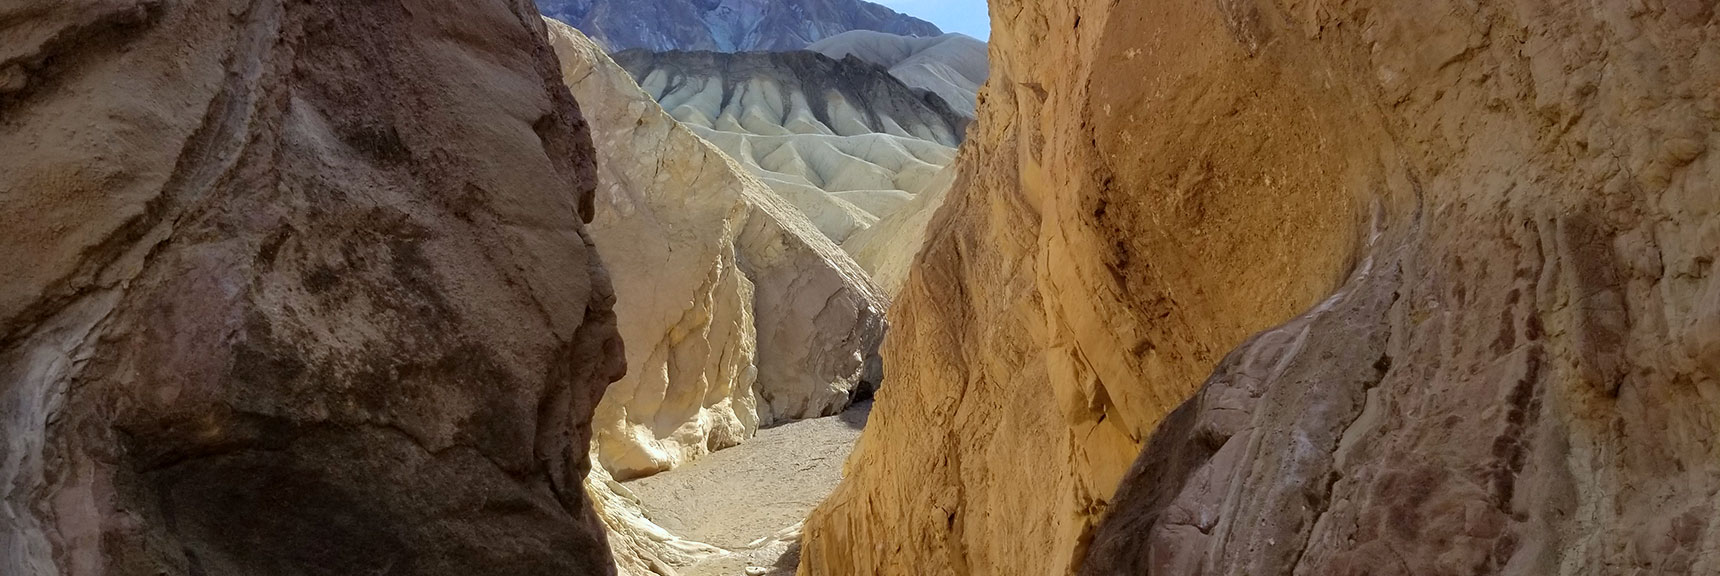 Golden Canyon Death Valley National Park, CA